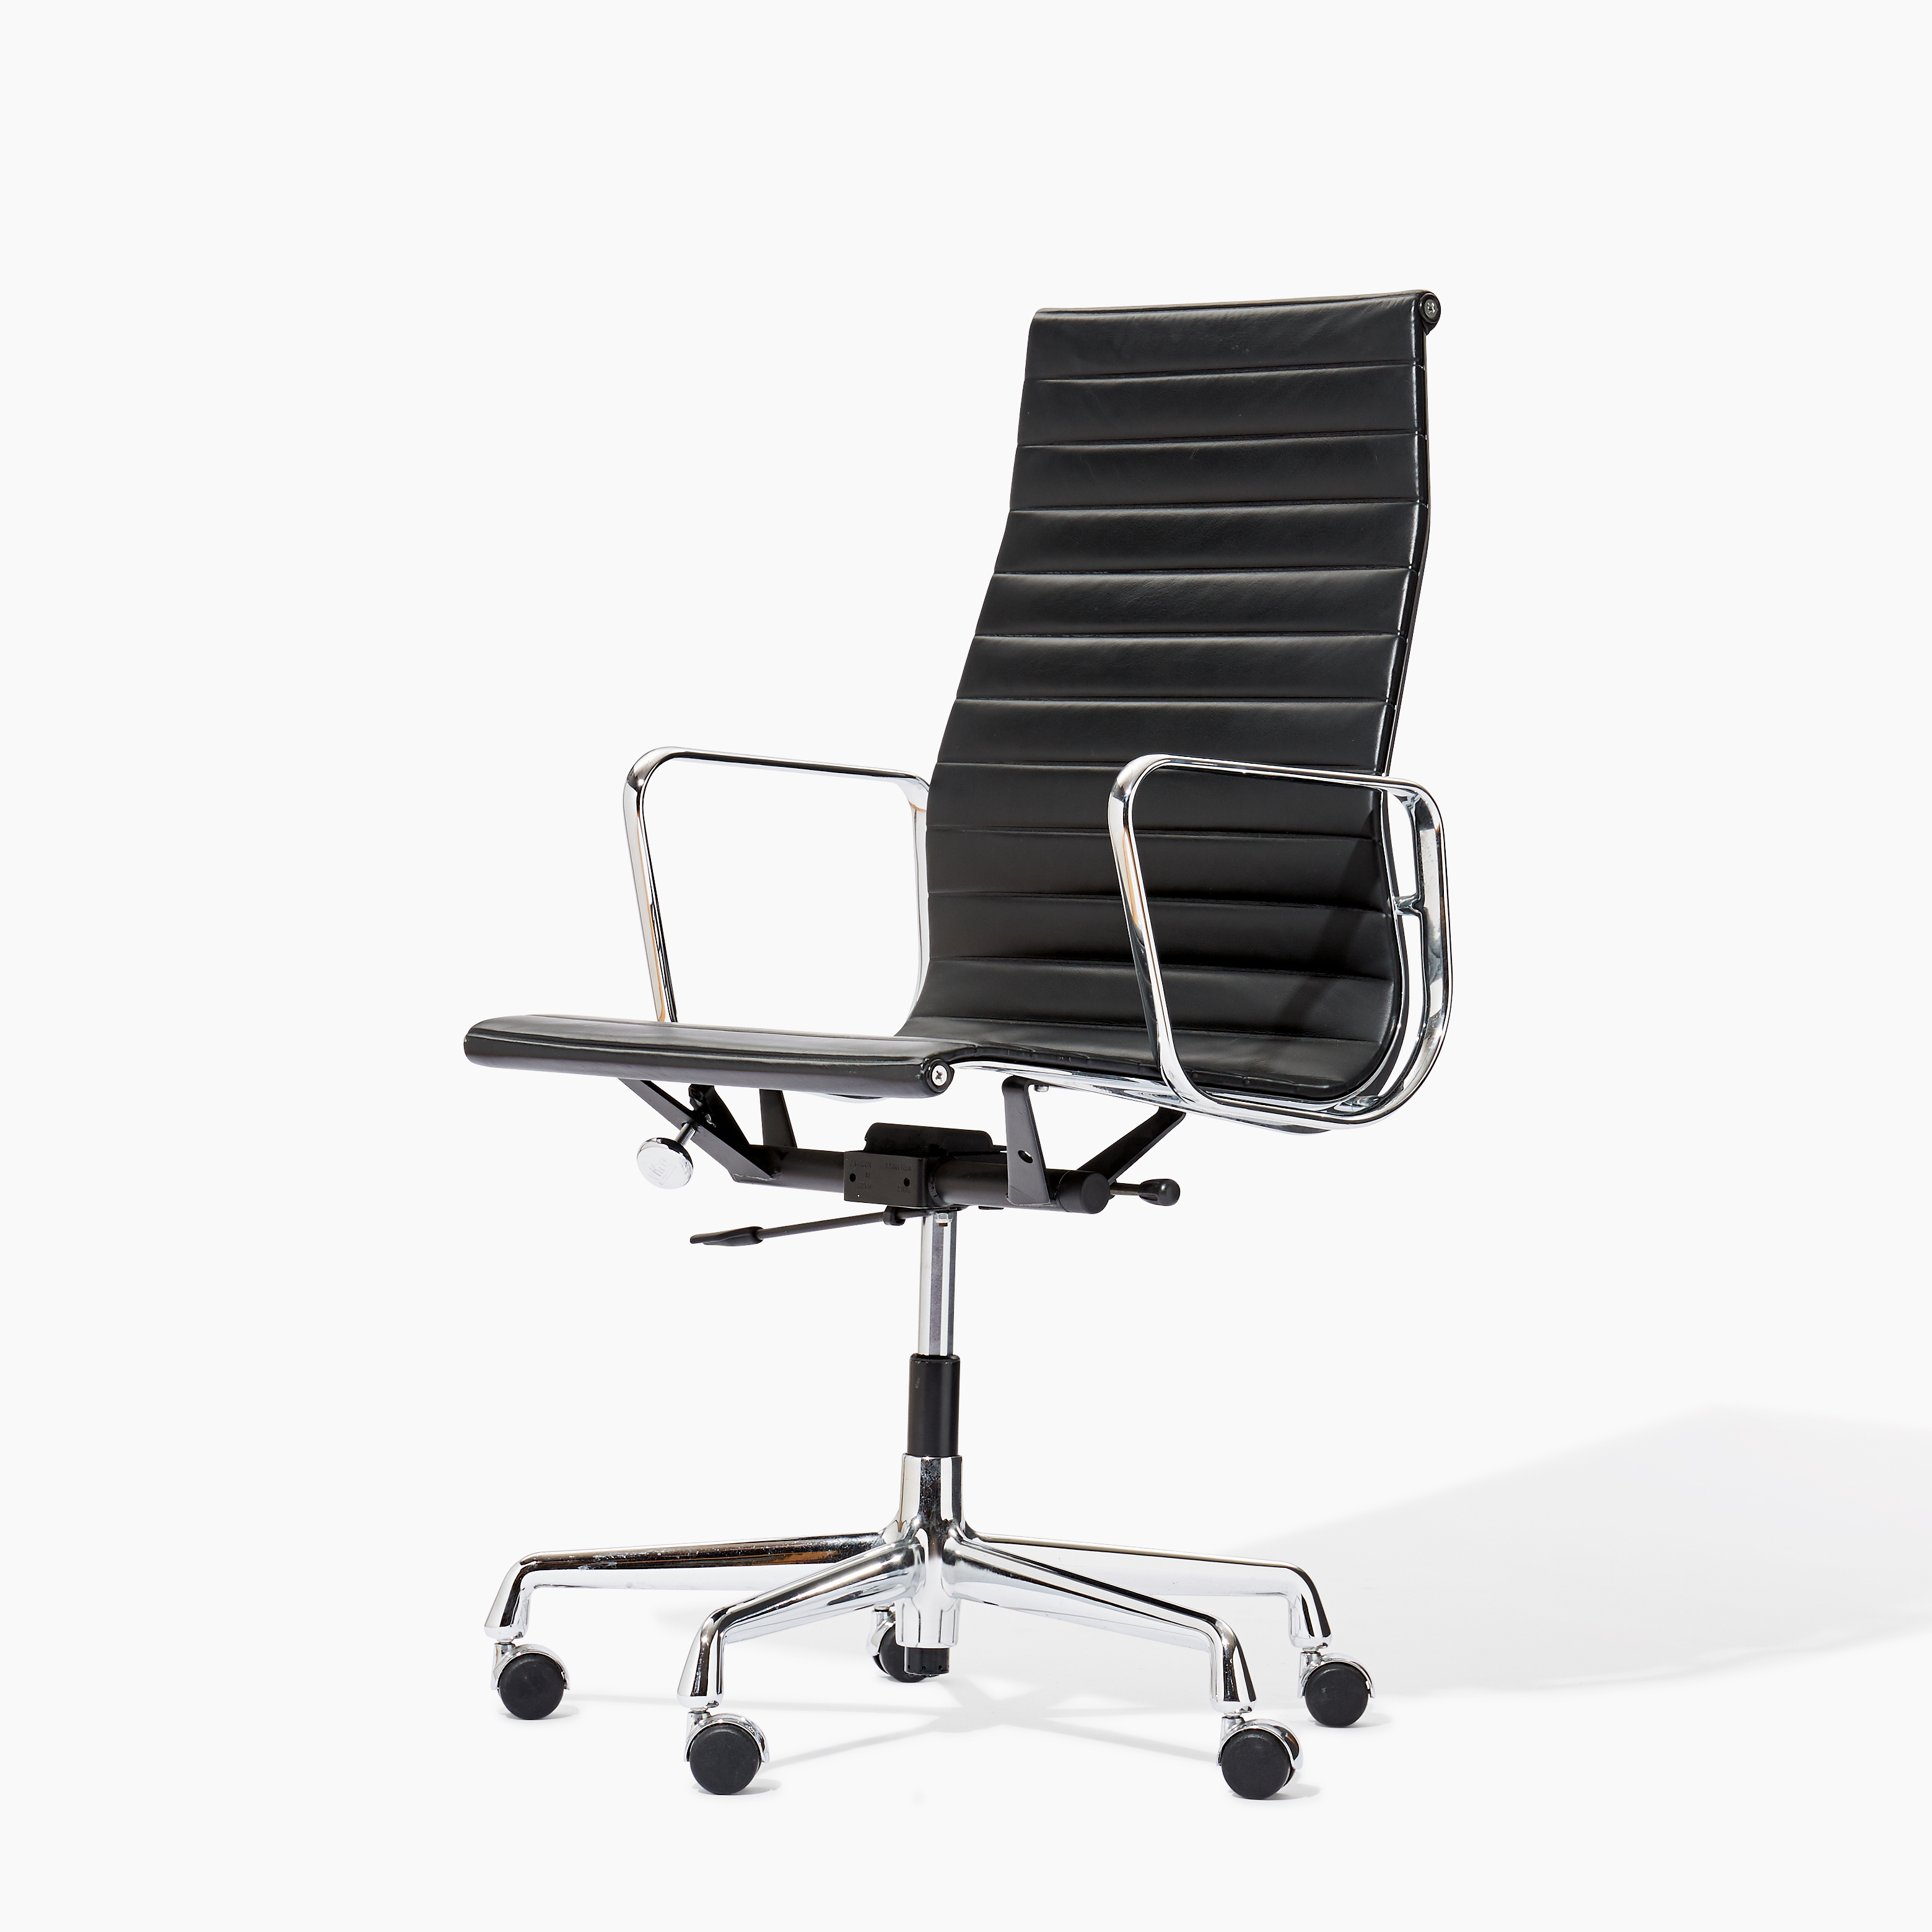 Vitra Eames Ea 119 Bureaustoel.Ray Eames Lots In Our Price Database Lotsearch